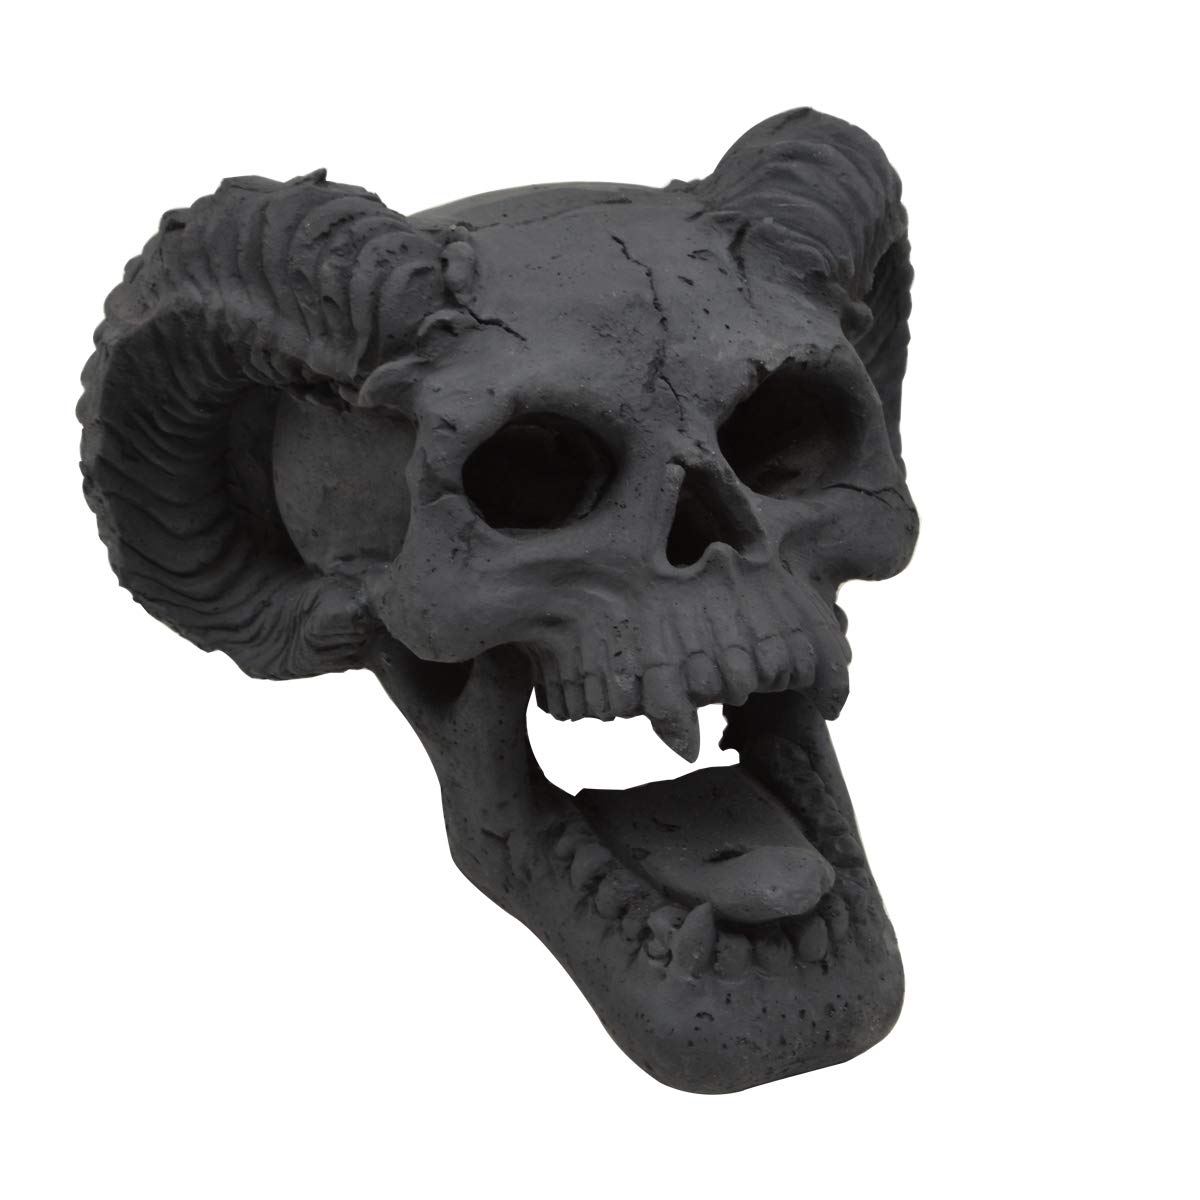 Stanbroil Demon Fireproof Fire Pit Fireplace Skull Gas Log for All Types of Gas Inserts, Ventless & Vent Free, Propane, Gel, Ethanol, Electric, Outdoor Fireplace and Fire Pit, Halloween Decor, Black by Stanbroil